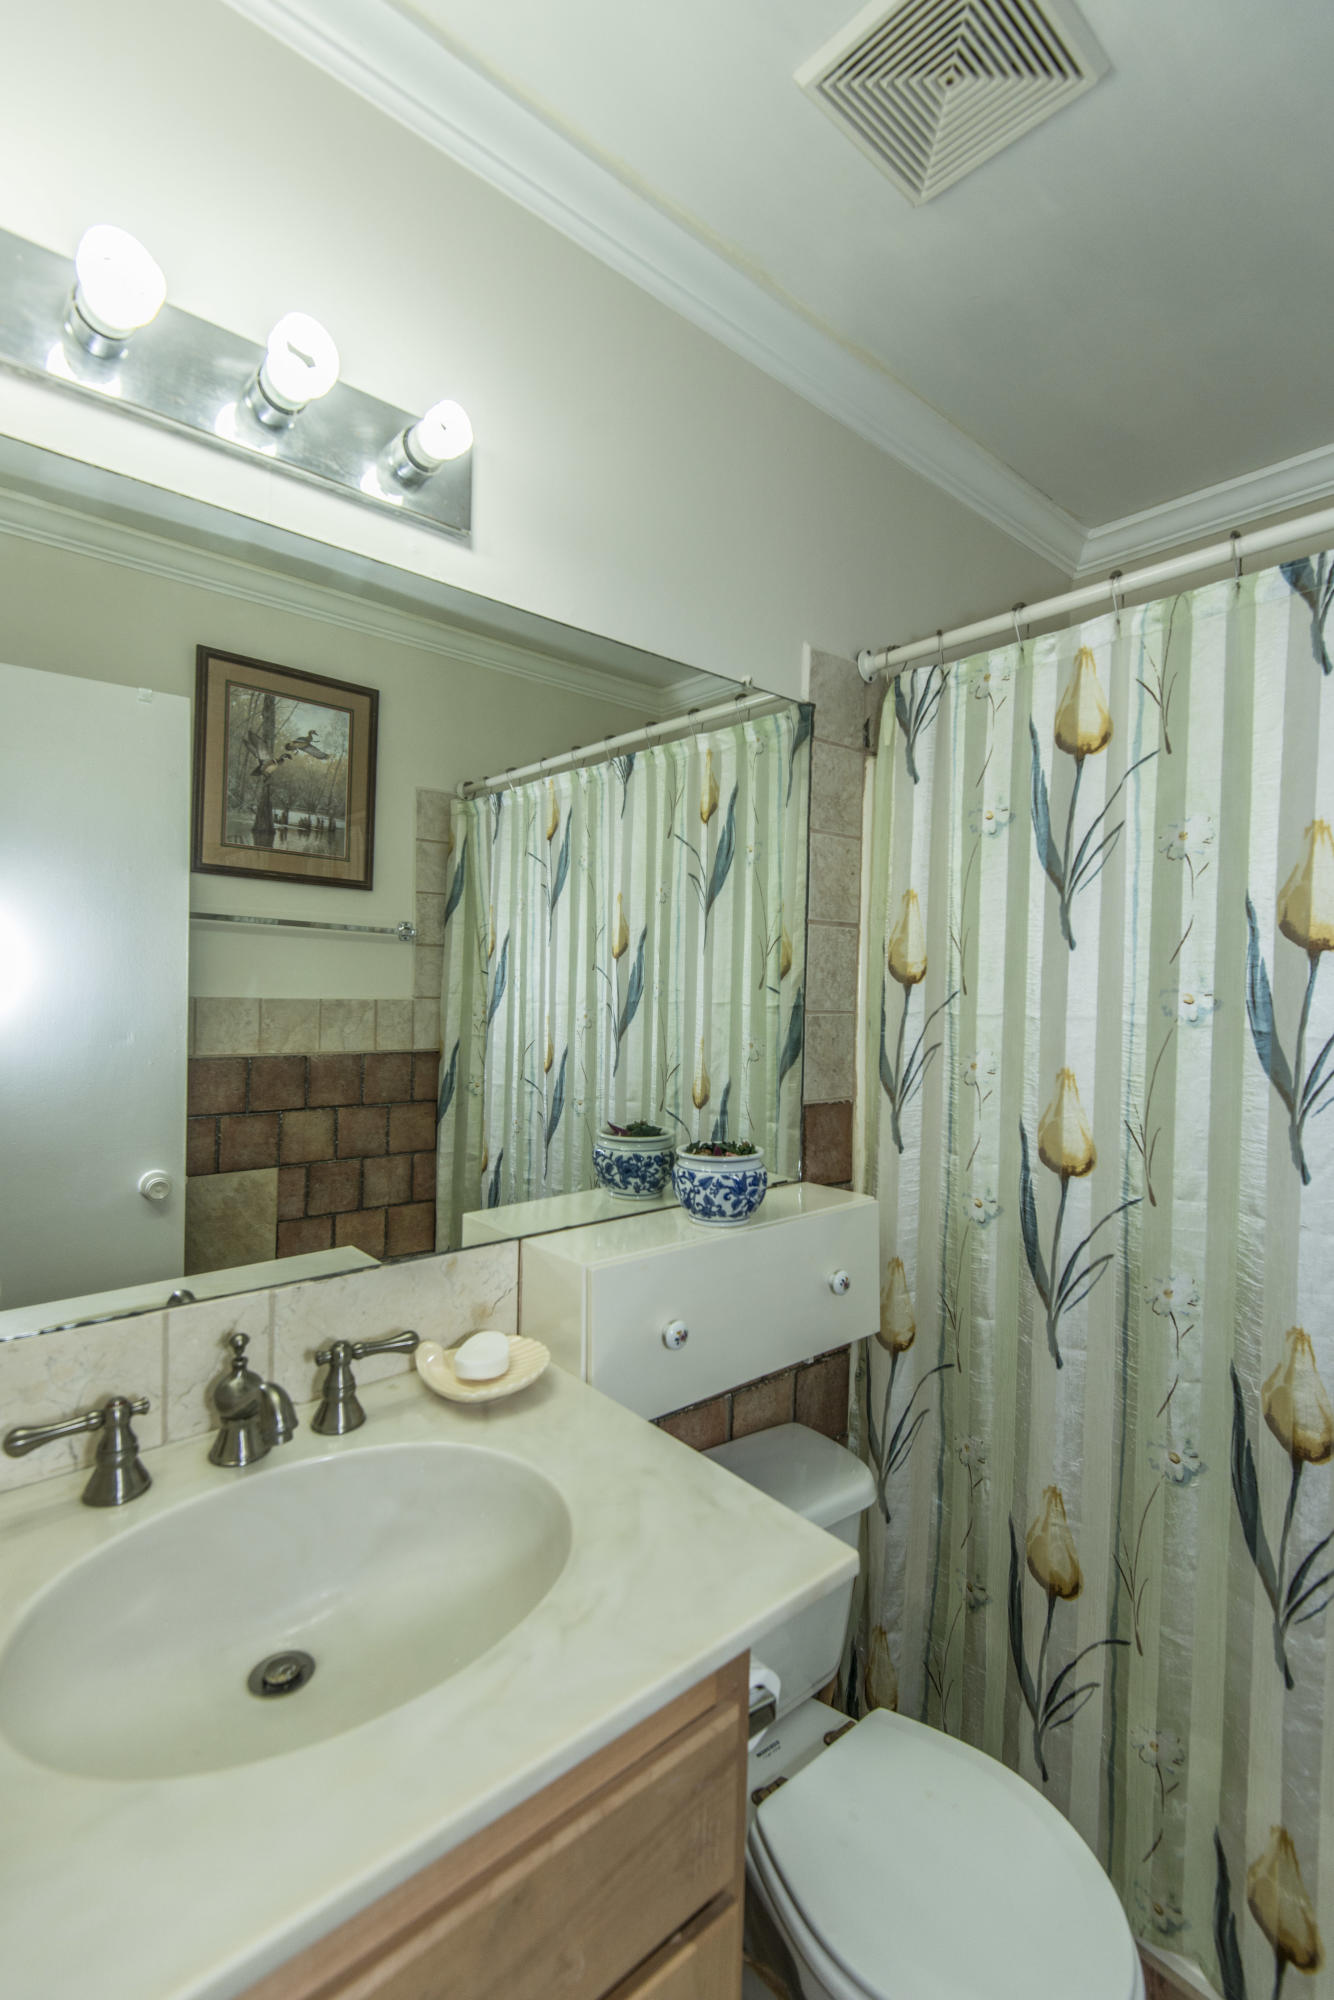 Rivers Point Row Homes For Sale - 21 Rivers Point Row, Charleston, SC - 19